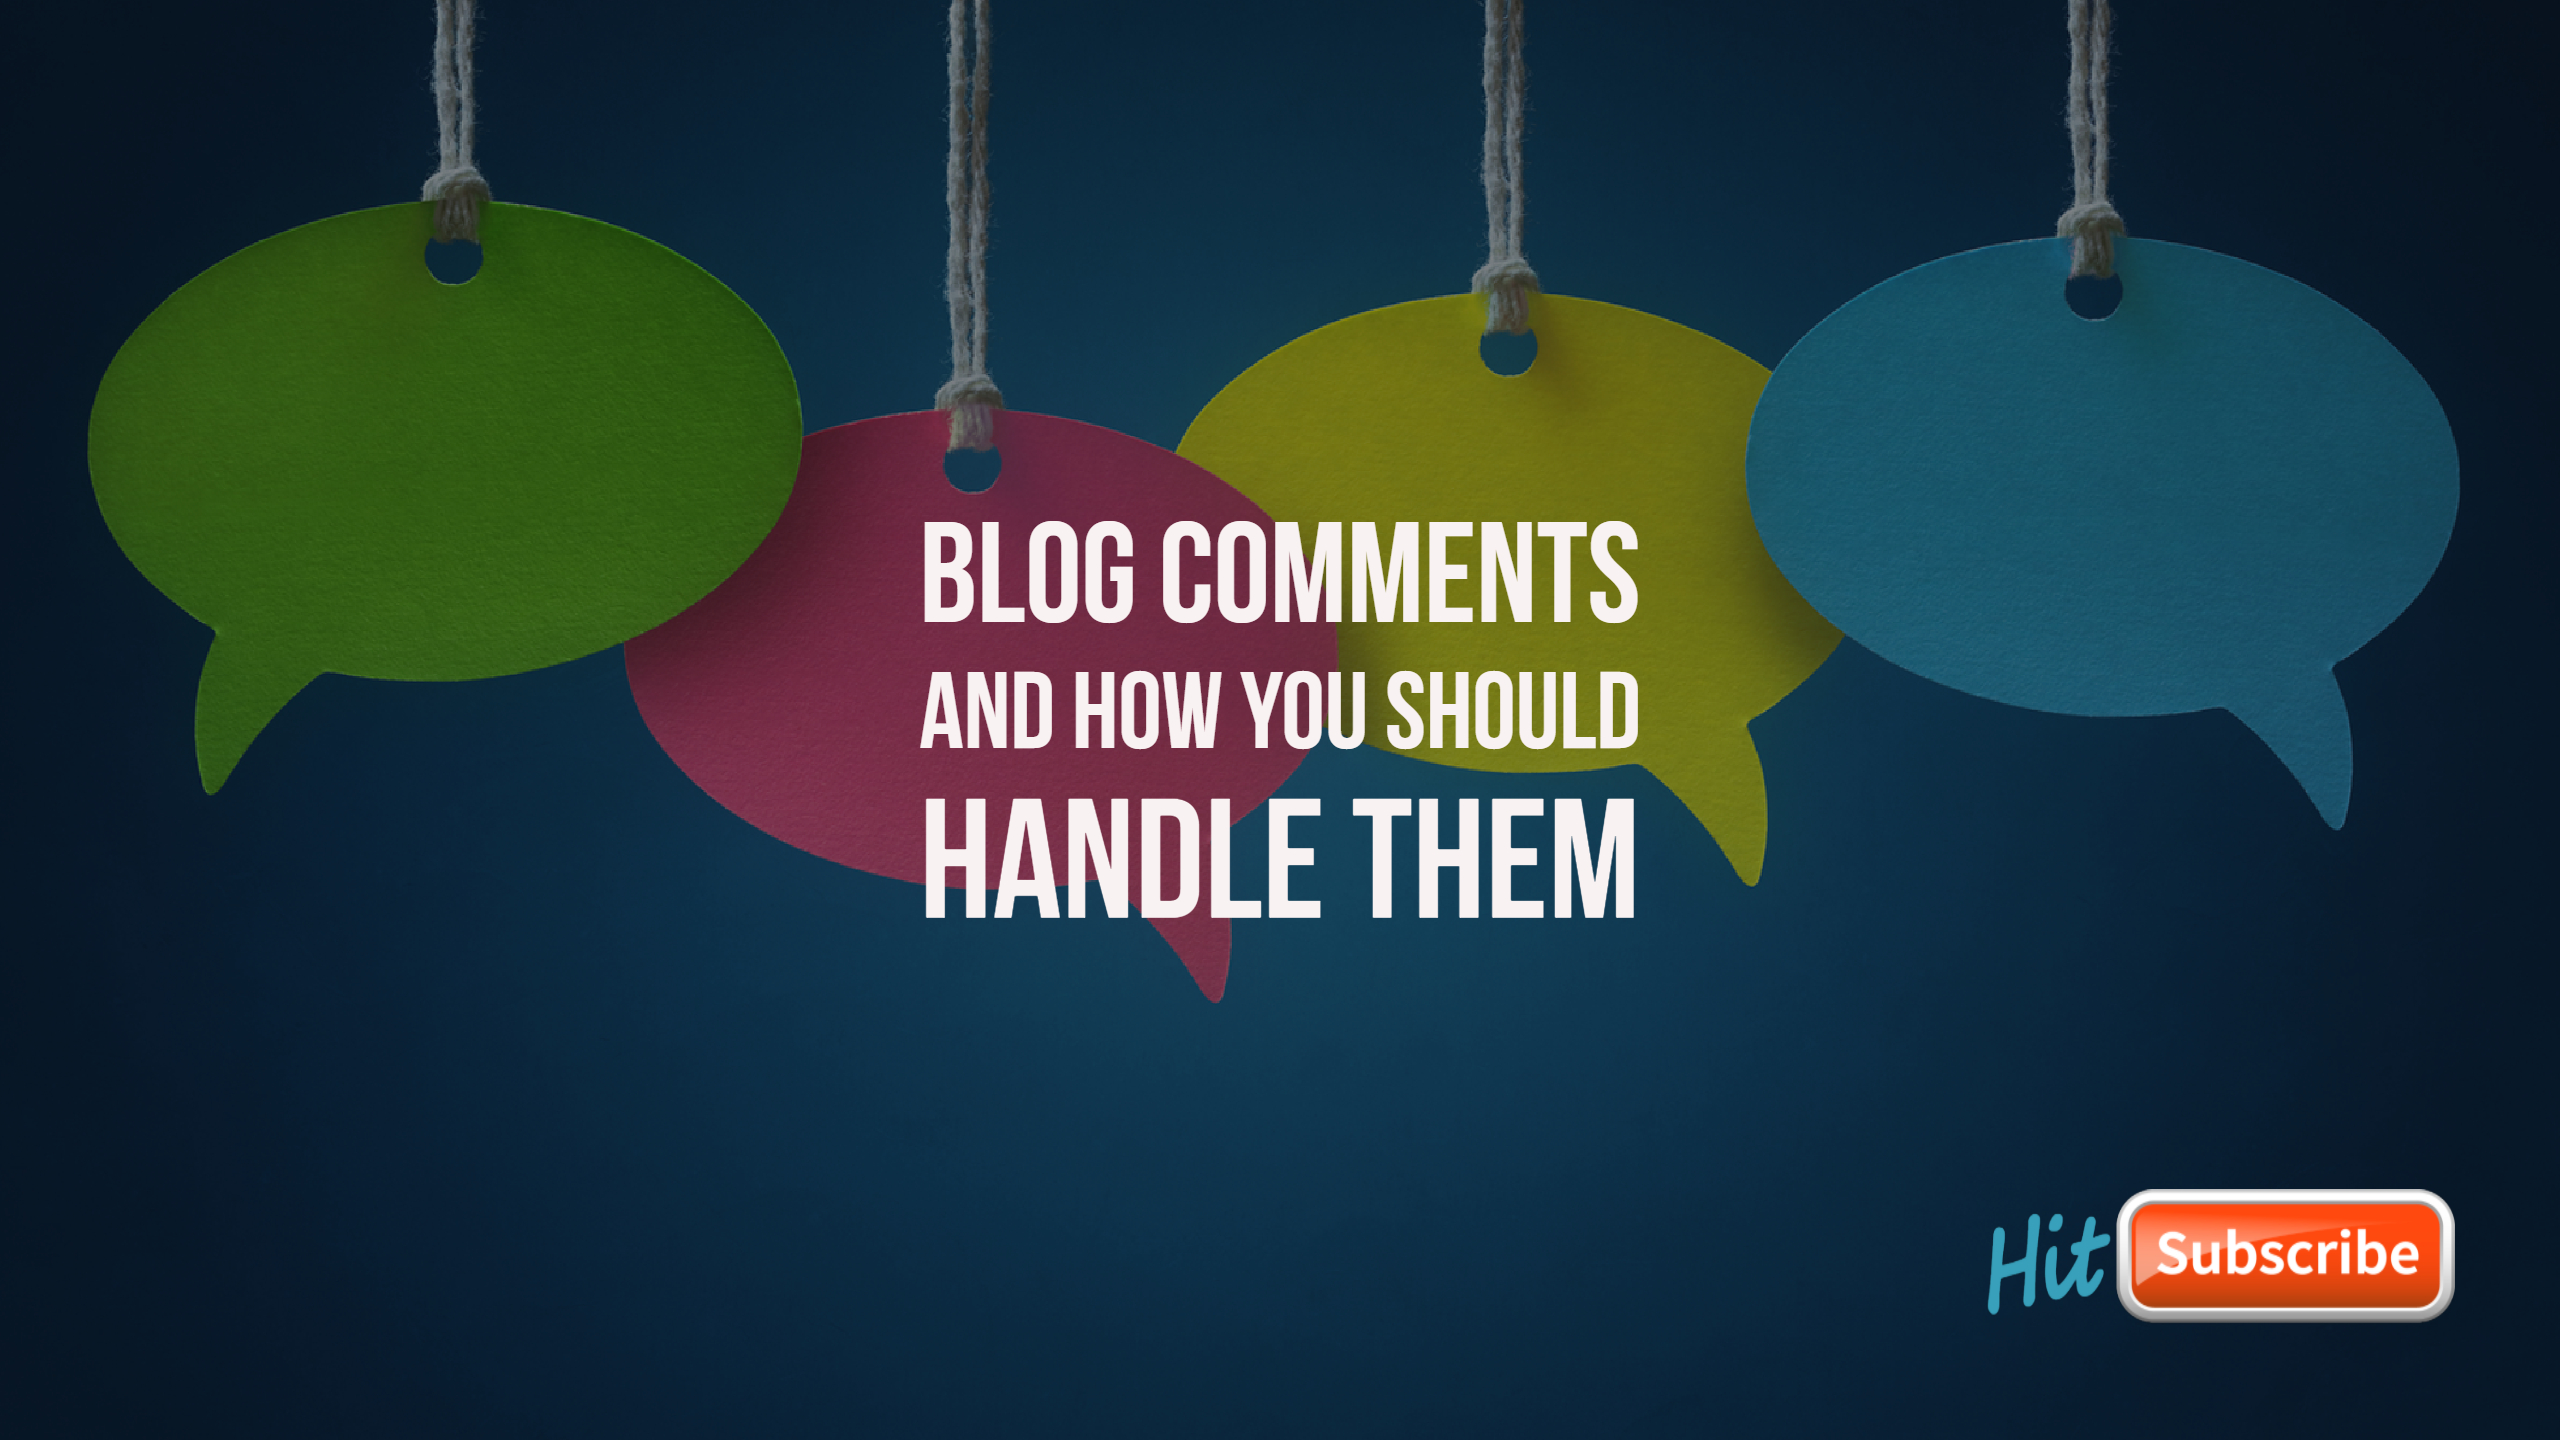 Image with post title and chat bubbles representing blog comments